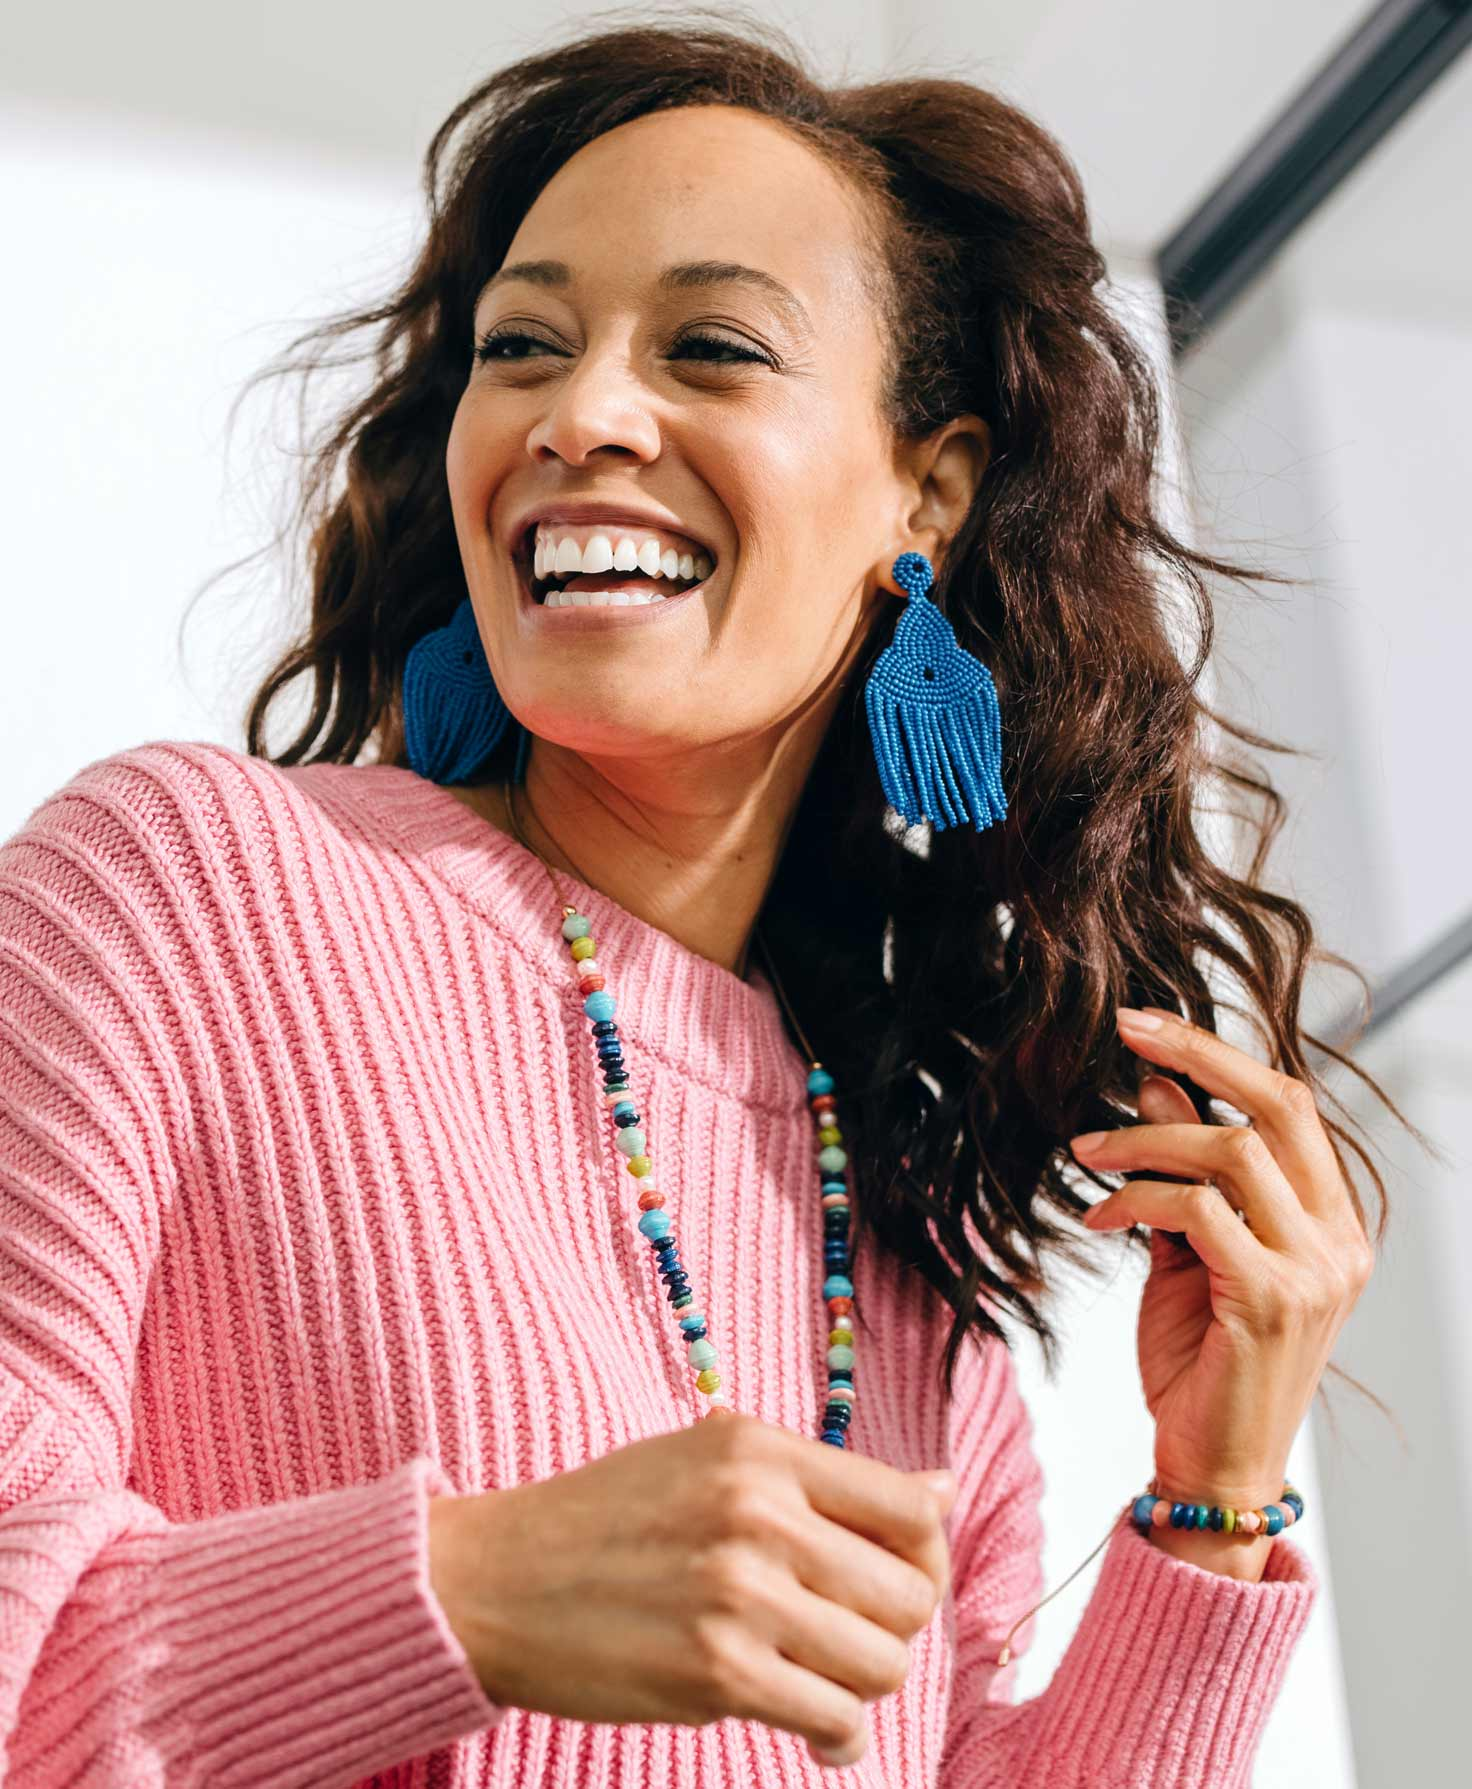 A model wears the Enthusiast Earrings, which hang down and move freely as she turns. She also wears the Bevy Bracelet and True Colors Necklace, which feature shades of blue that pair well with the earrings.